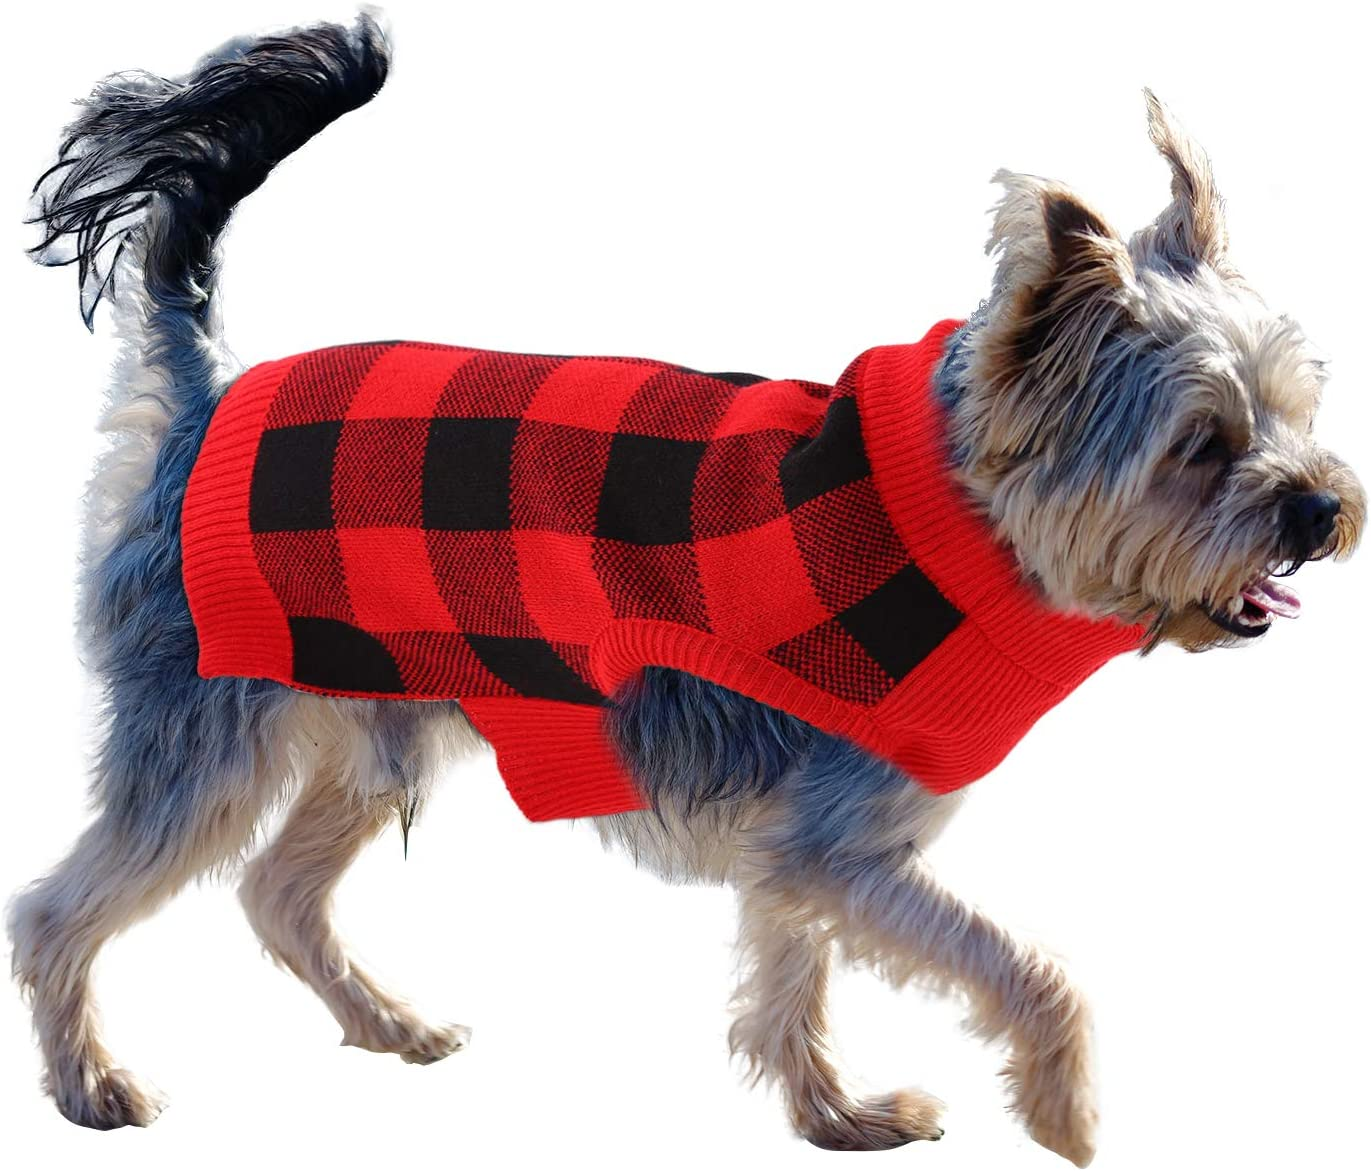 ASENKU Dog Sweater Free shipping anywhere in the nation Pet Turtleneck famous Larg Medium for Small